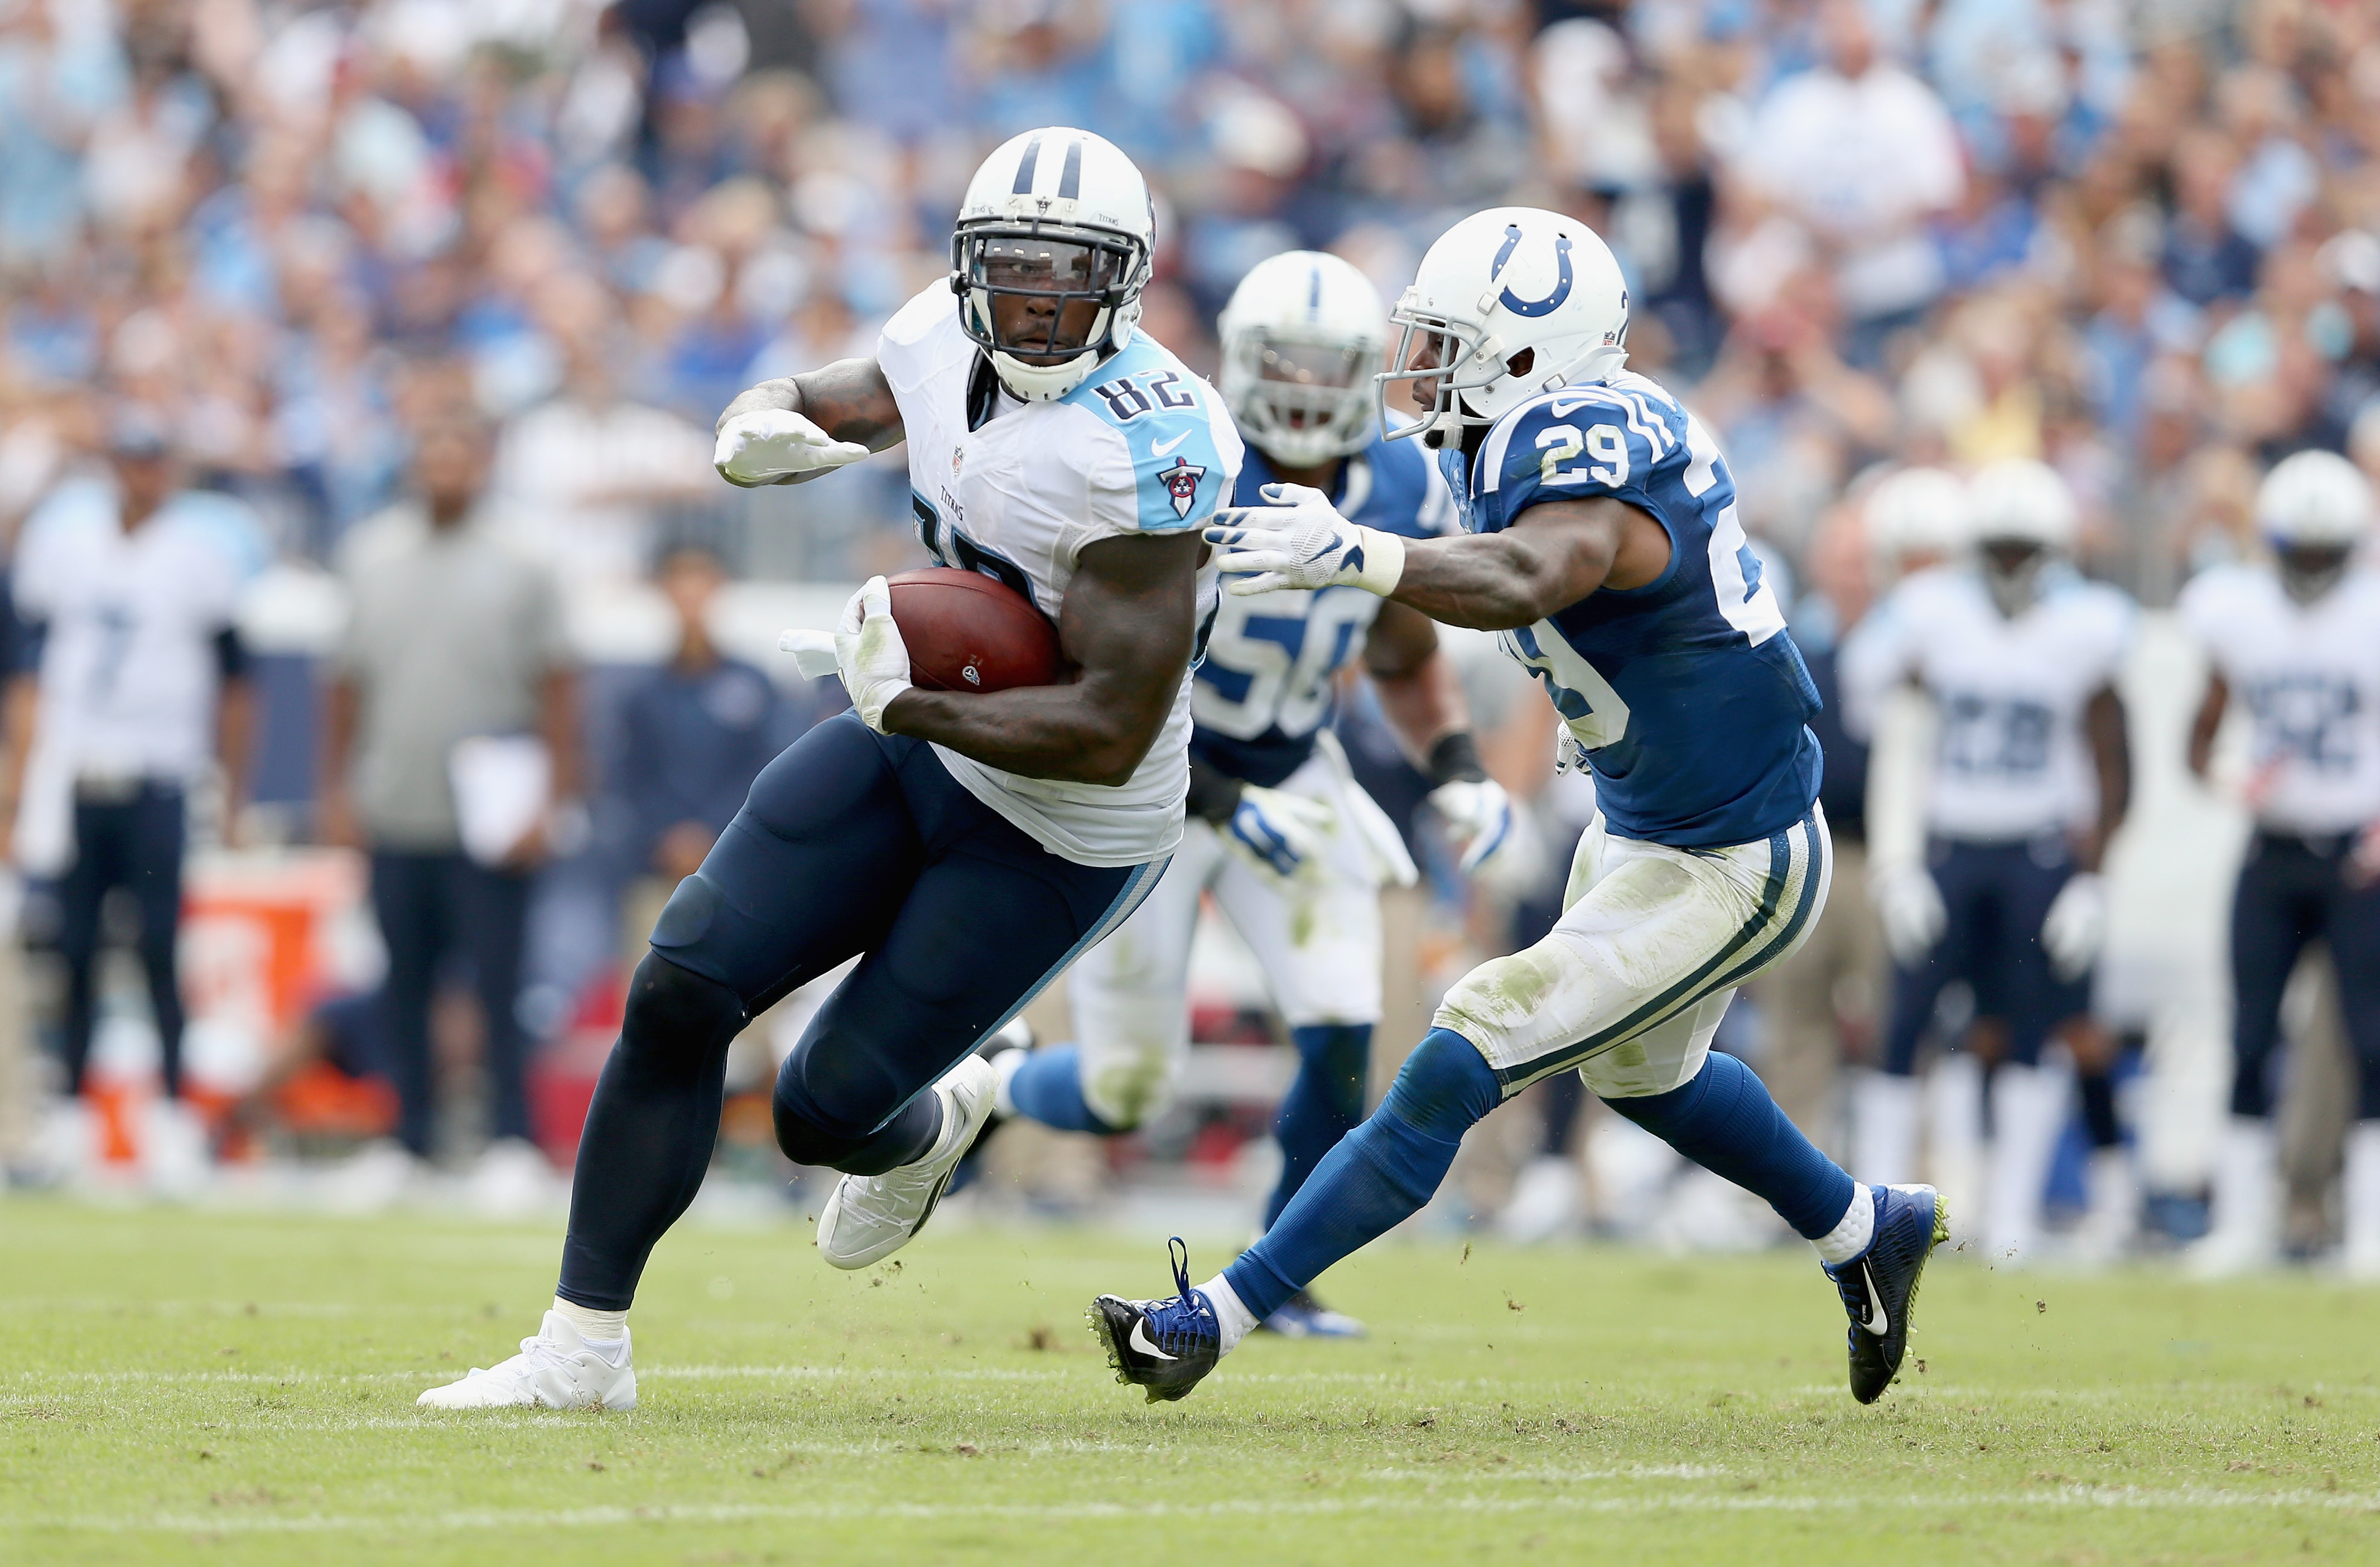 Delanie Walker has been a valuable member of the Titans offense. (Getty)